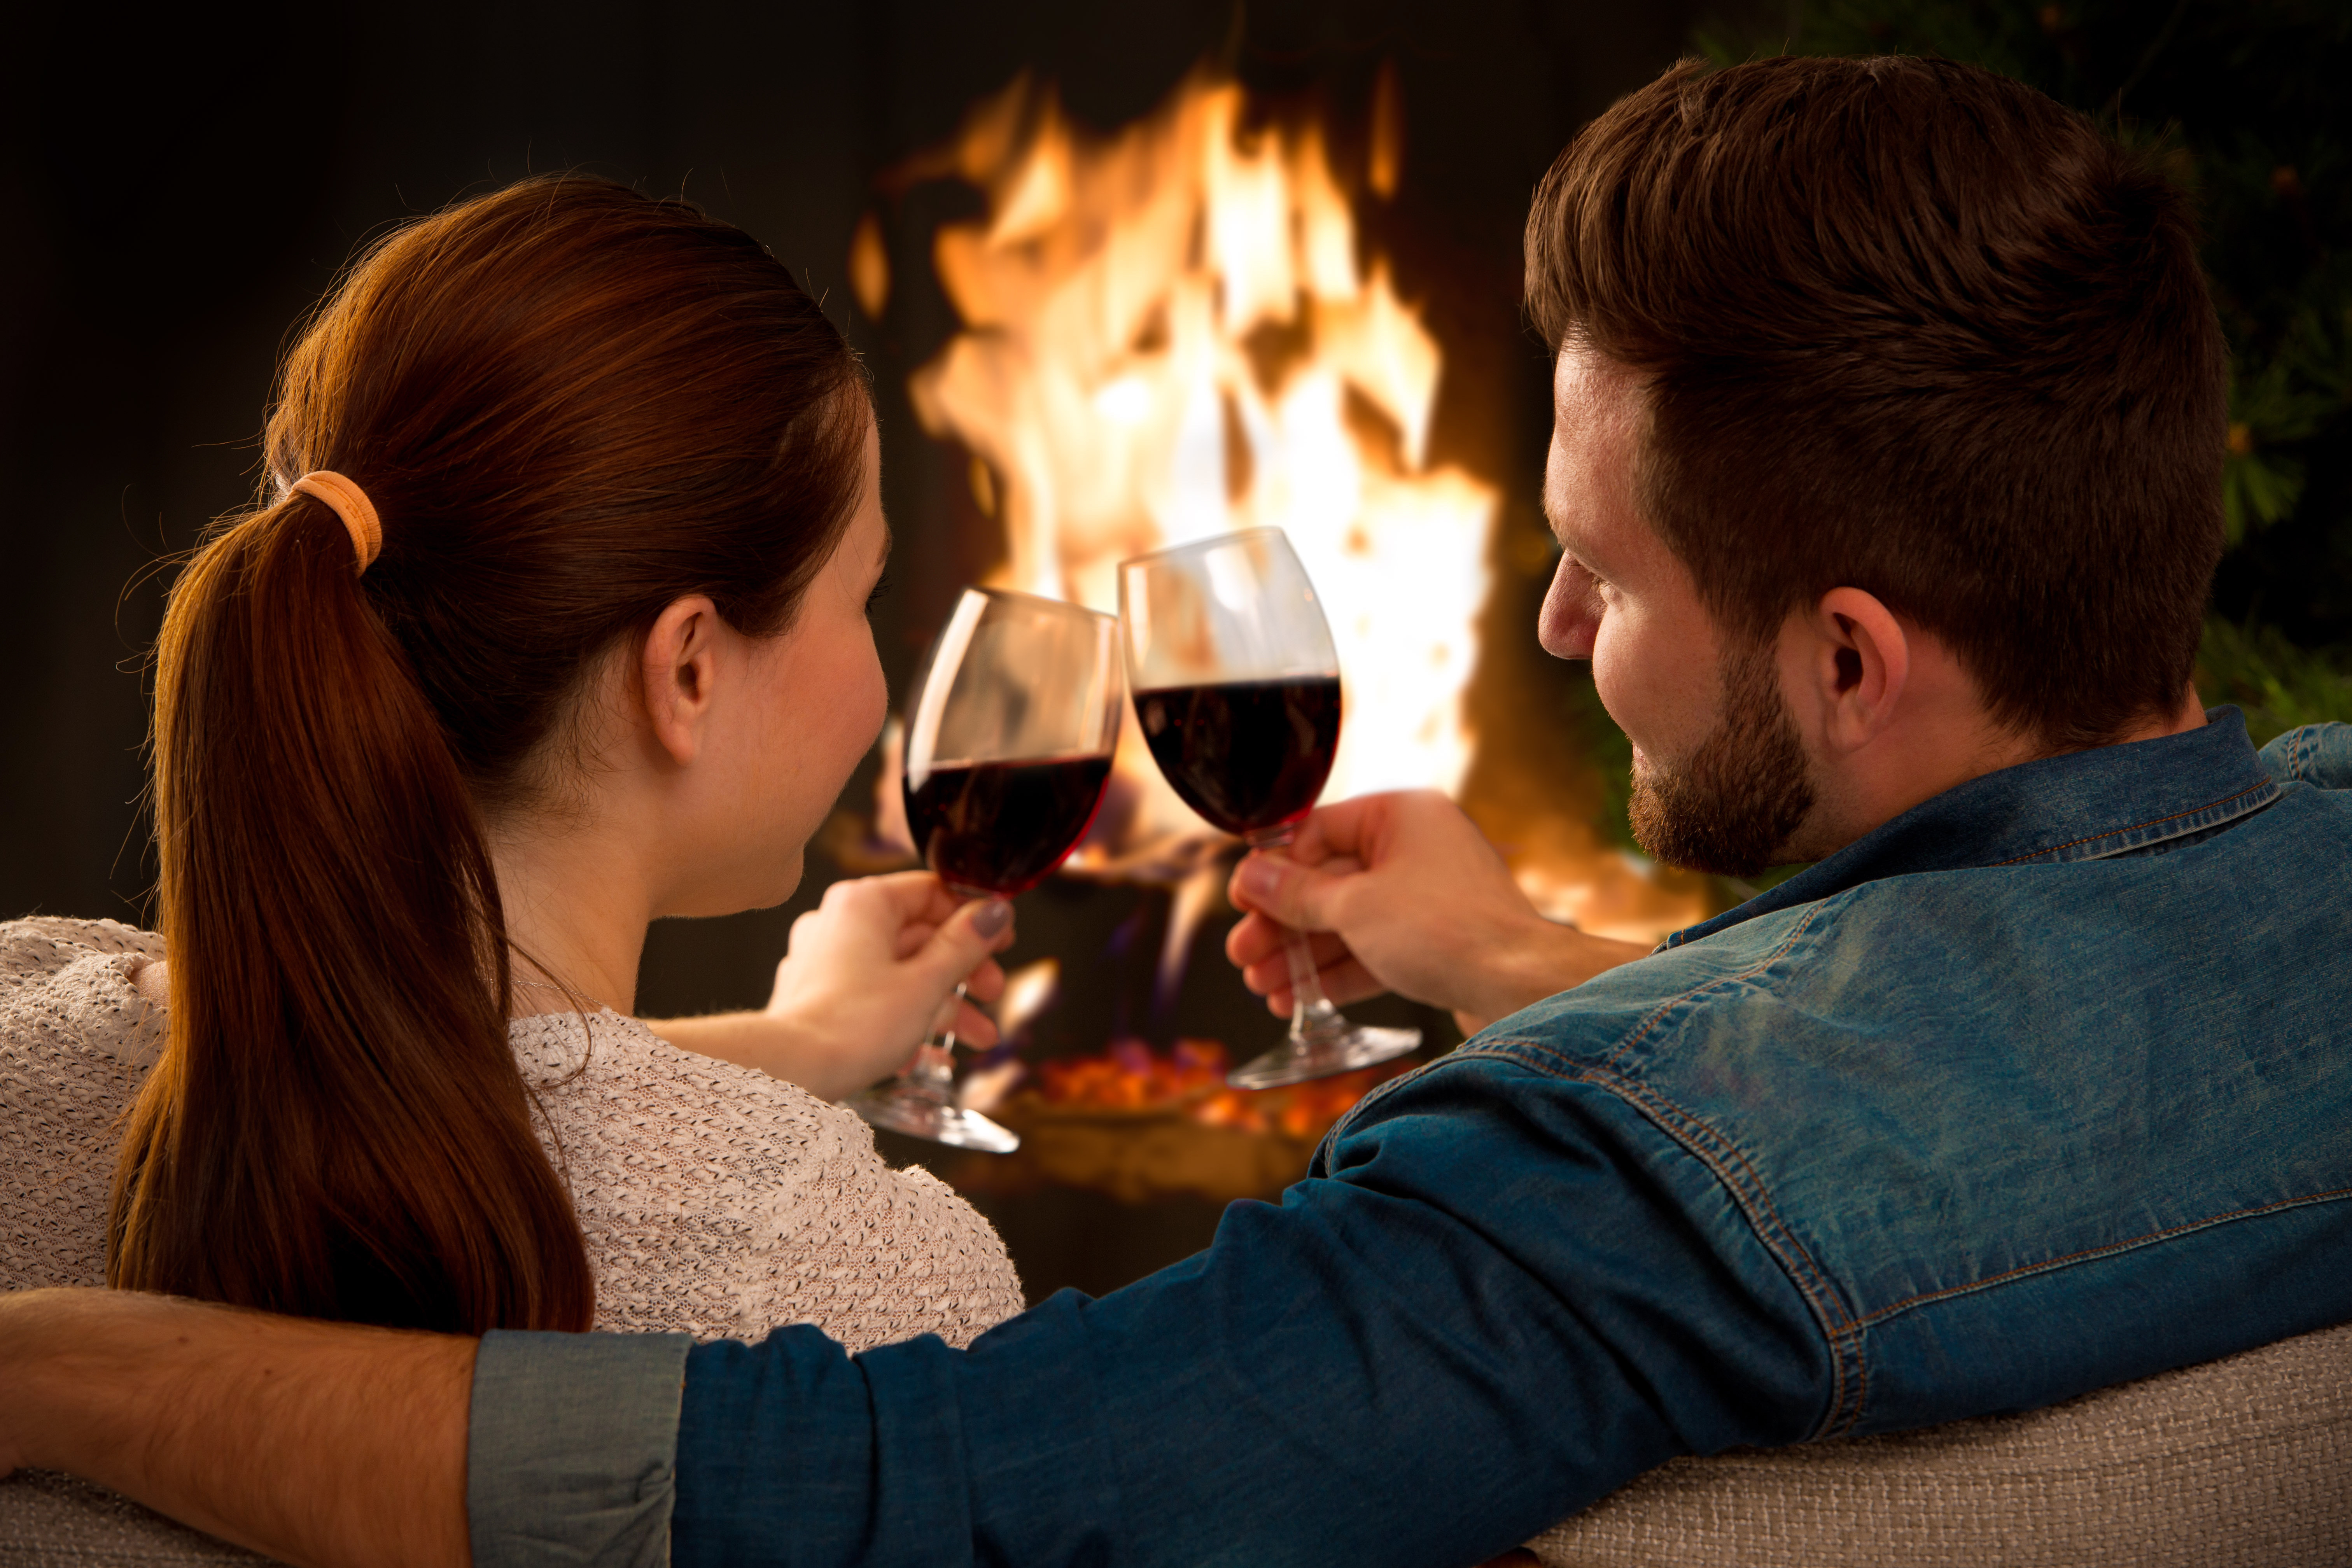 Couple at Fireside 440.jpg